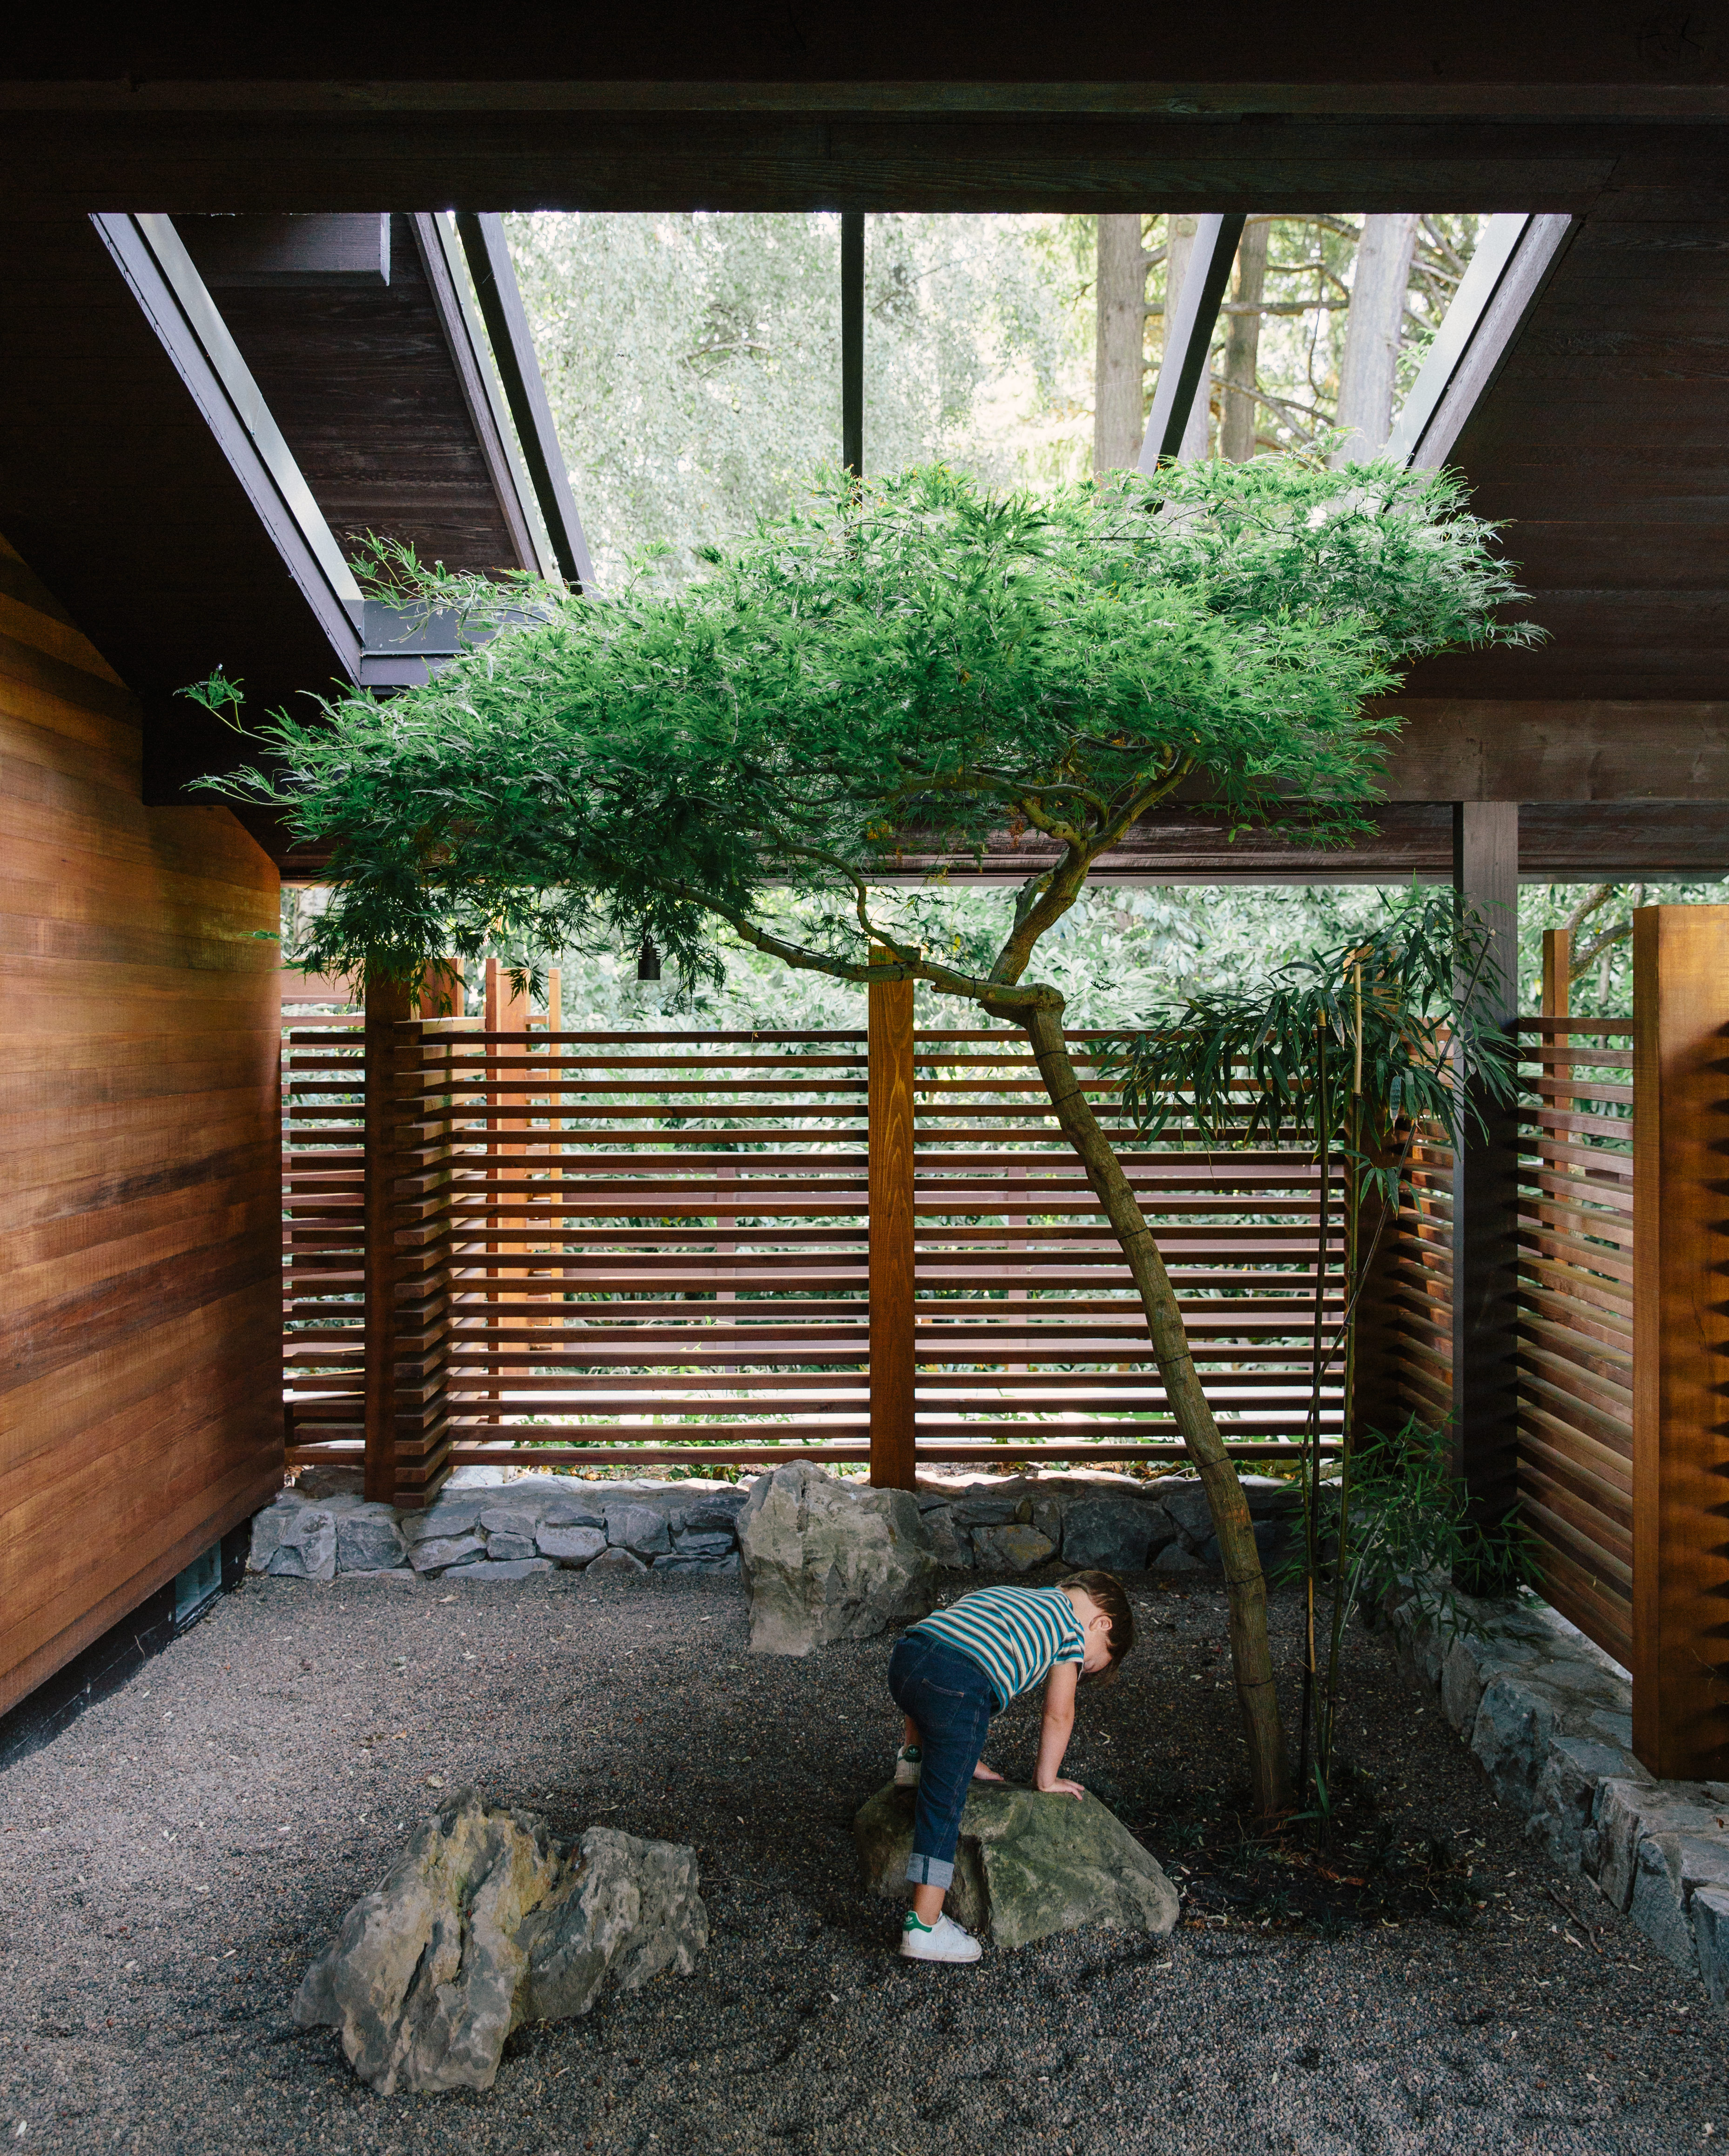 A tree grows in a renovated Portland home's interior courtyard.